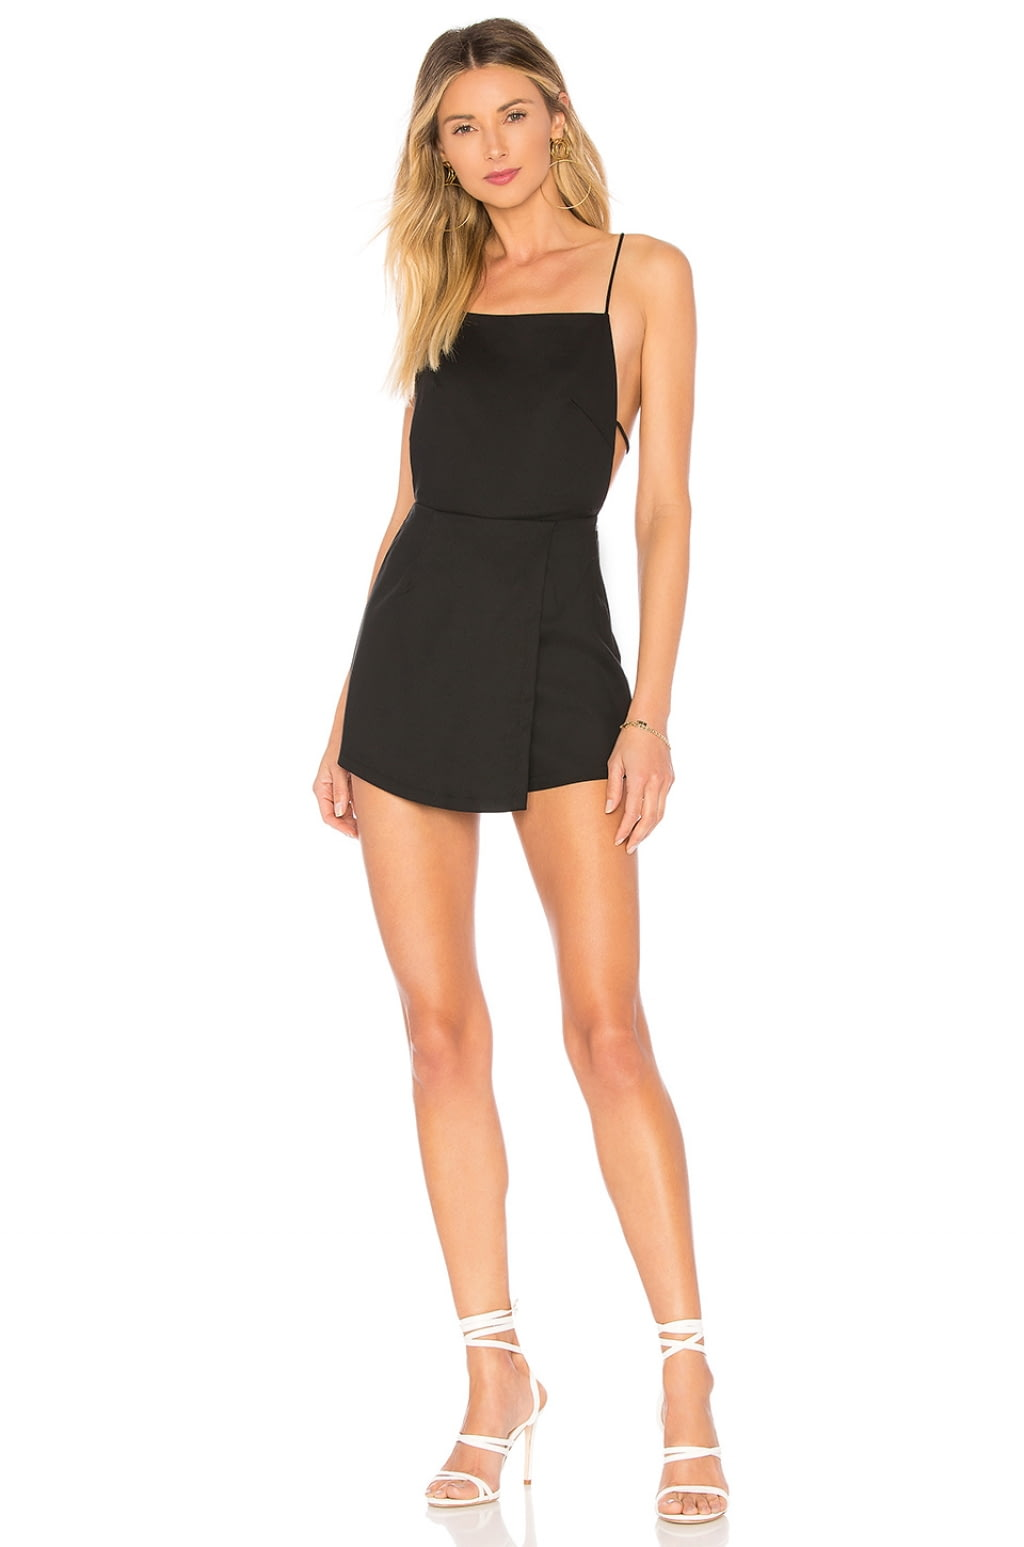 Veda Skort Romper in Black. - size M (also in L,S,XS) by the way.